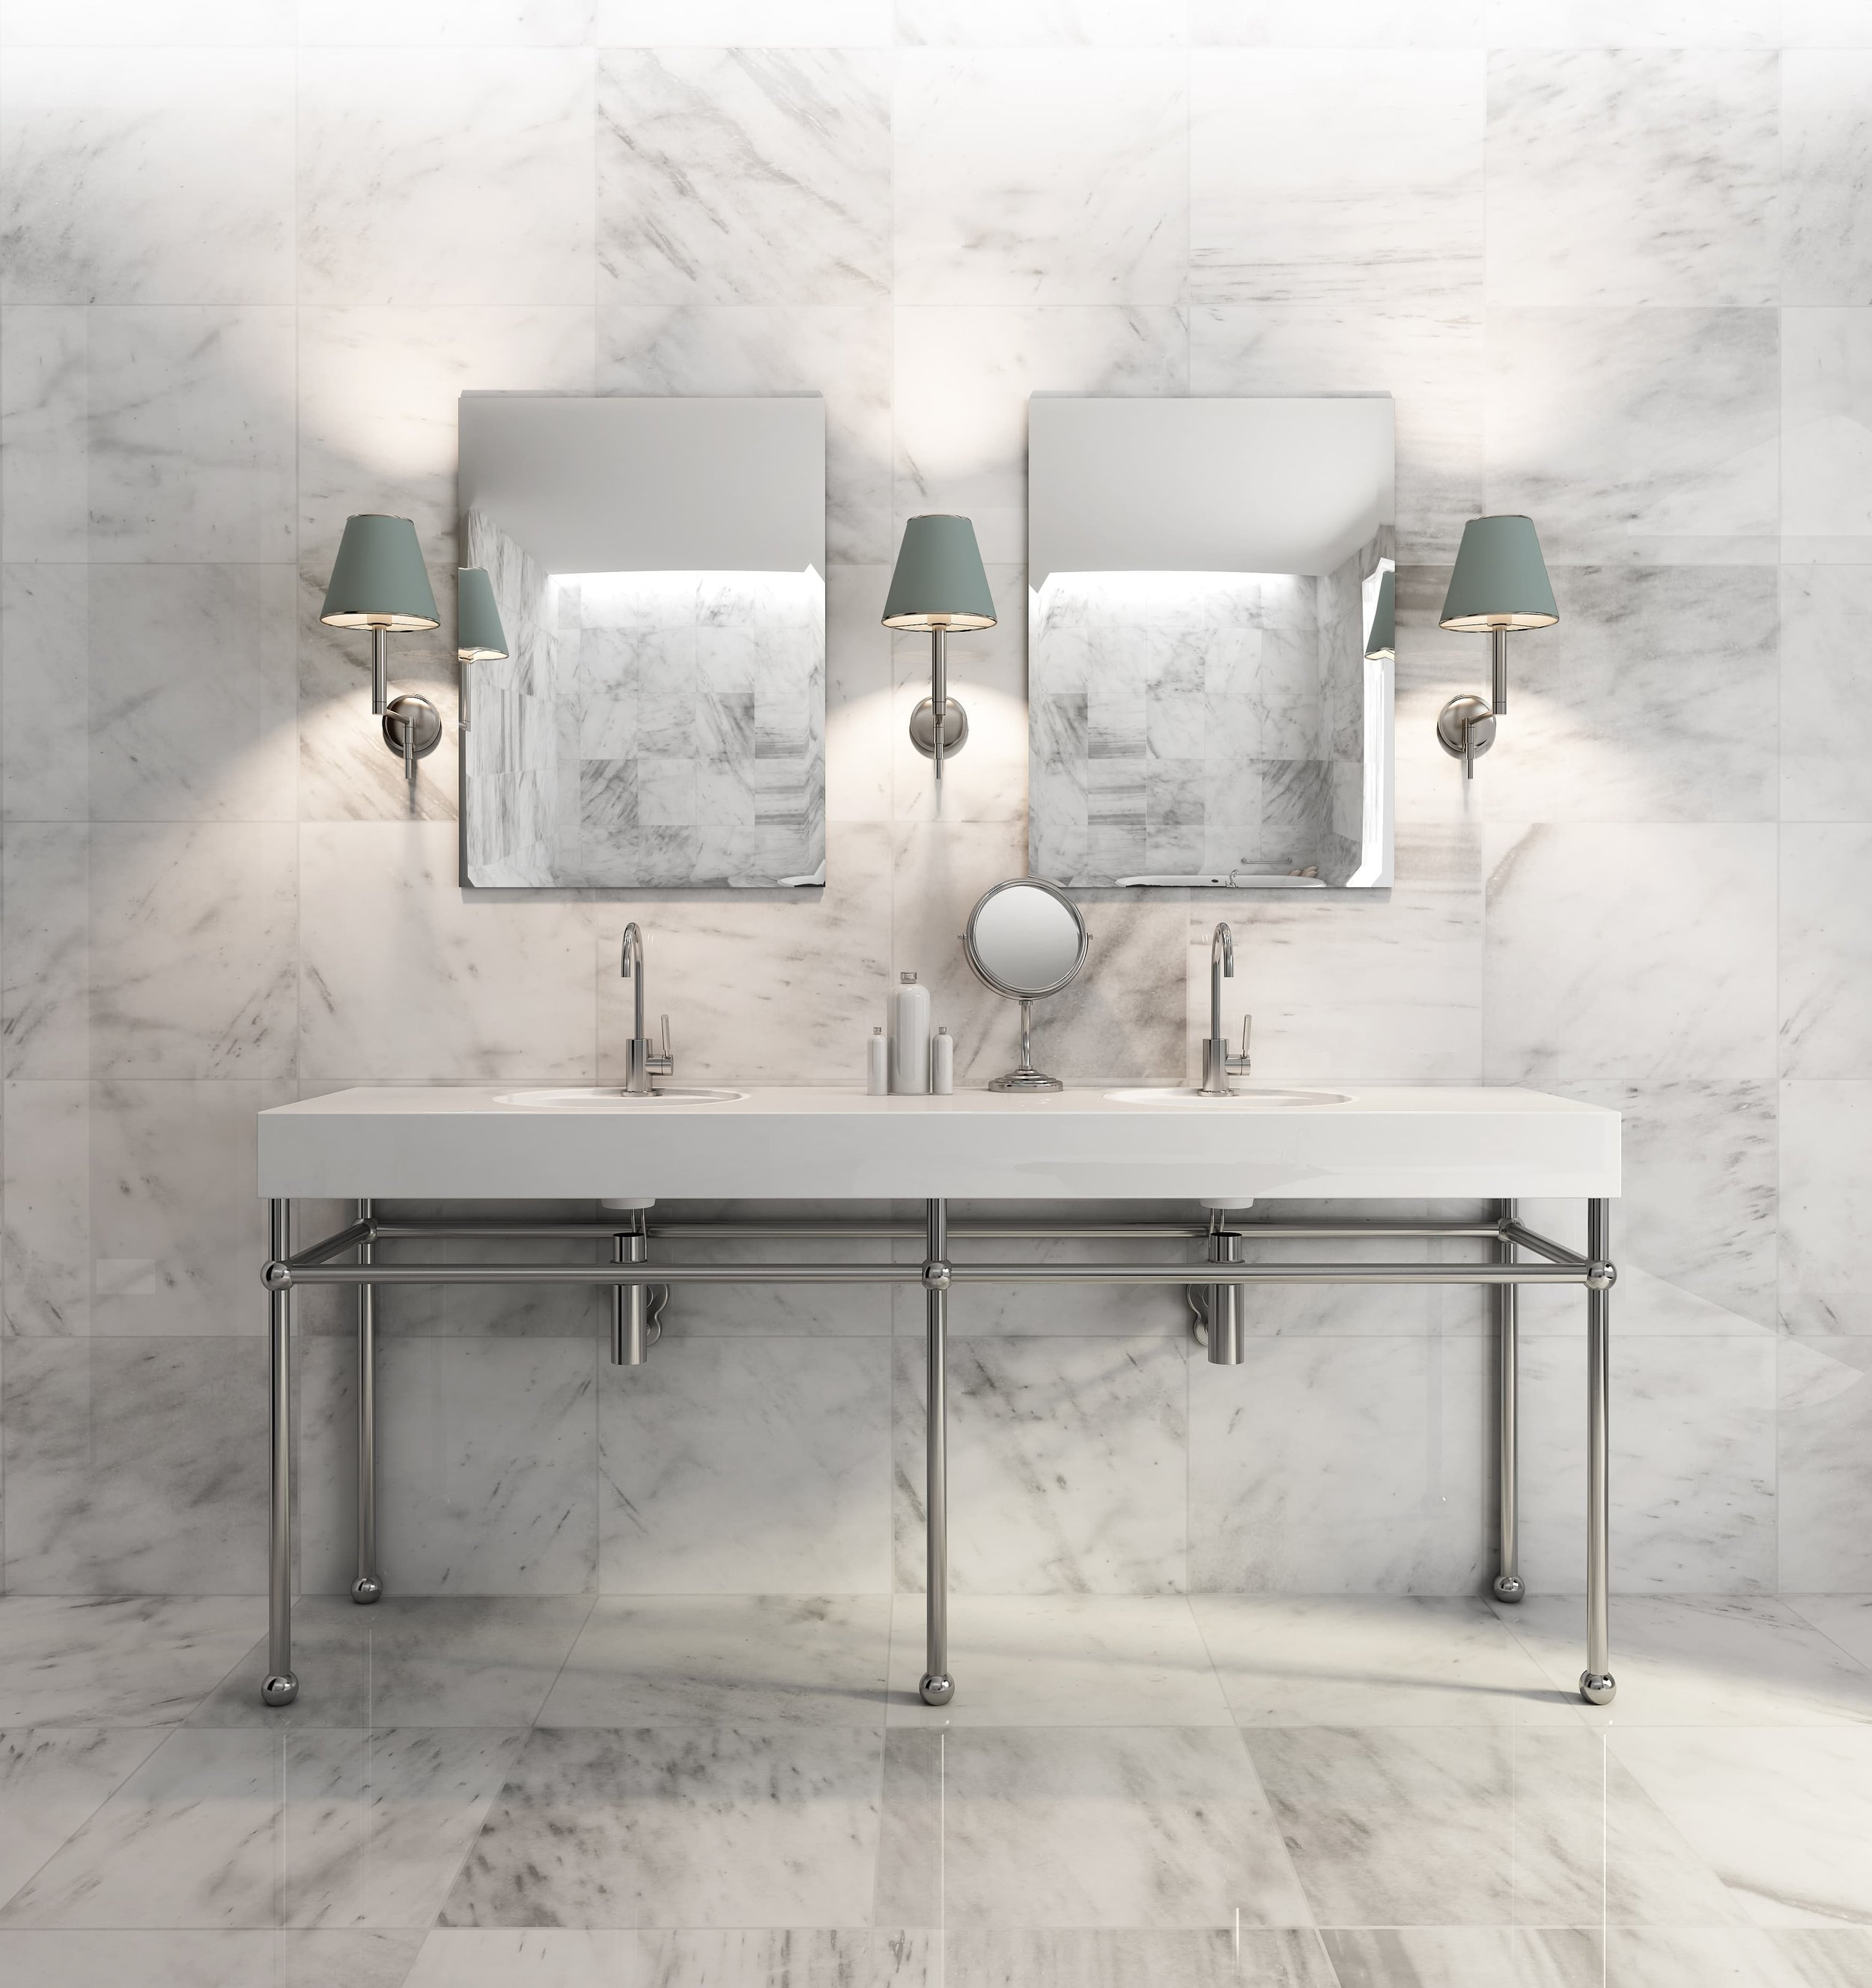 KHB Interiors Interior Design Old Metairie Luxury Bathrooms Master Bathroom Marble Bathroom Help Me Decorate French country.jpg